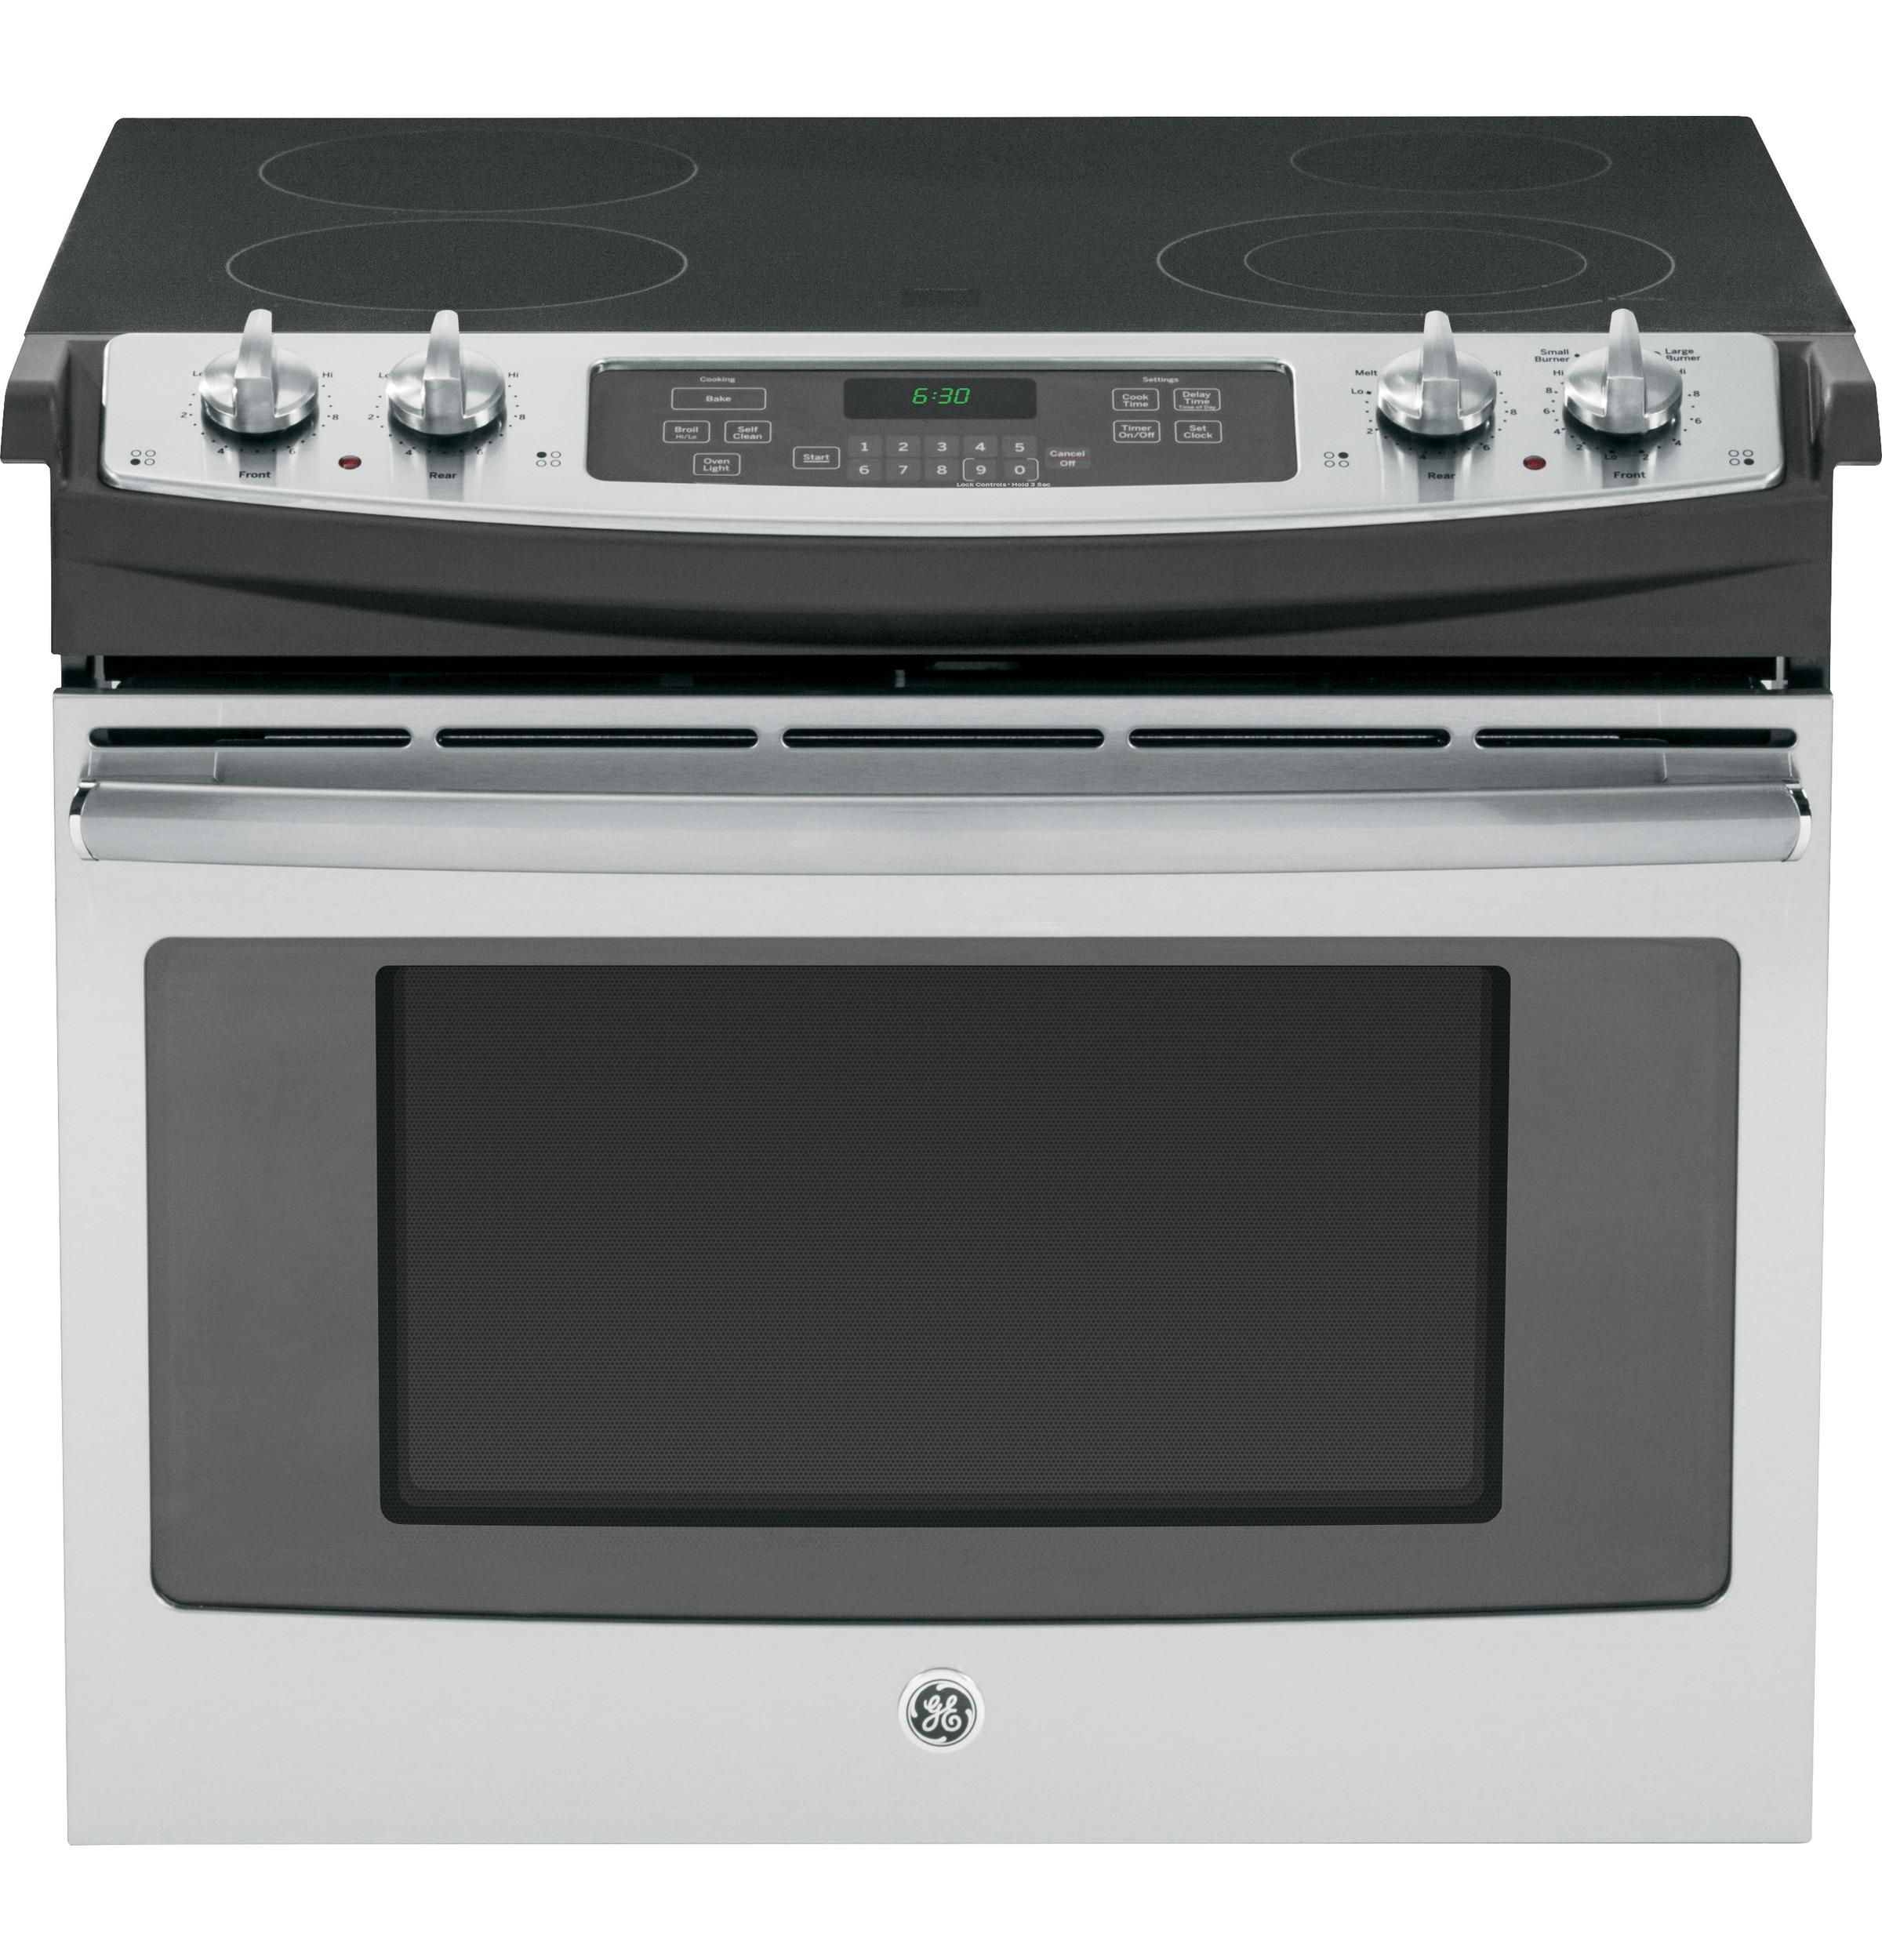 "GE Appliances Electric Range 30"" Drop-In Electric Range - Item Number: JD630SFSS"